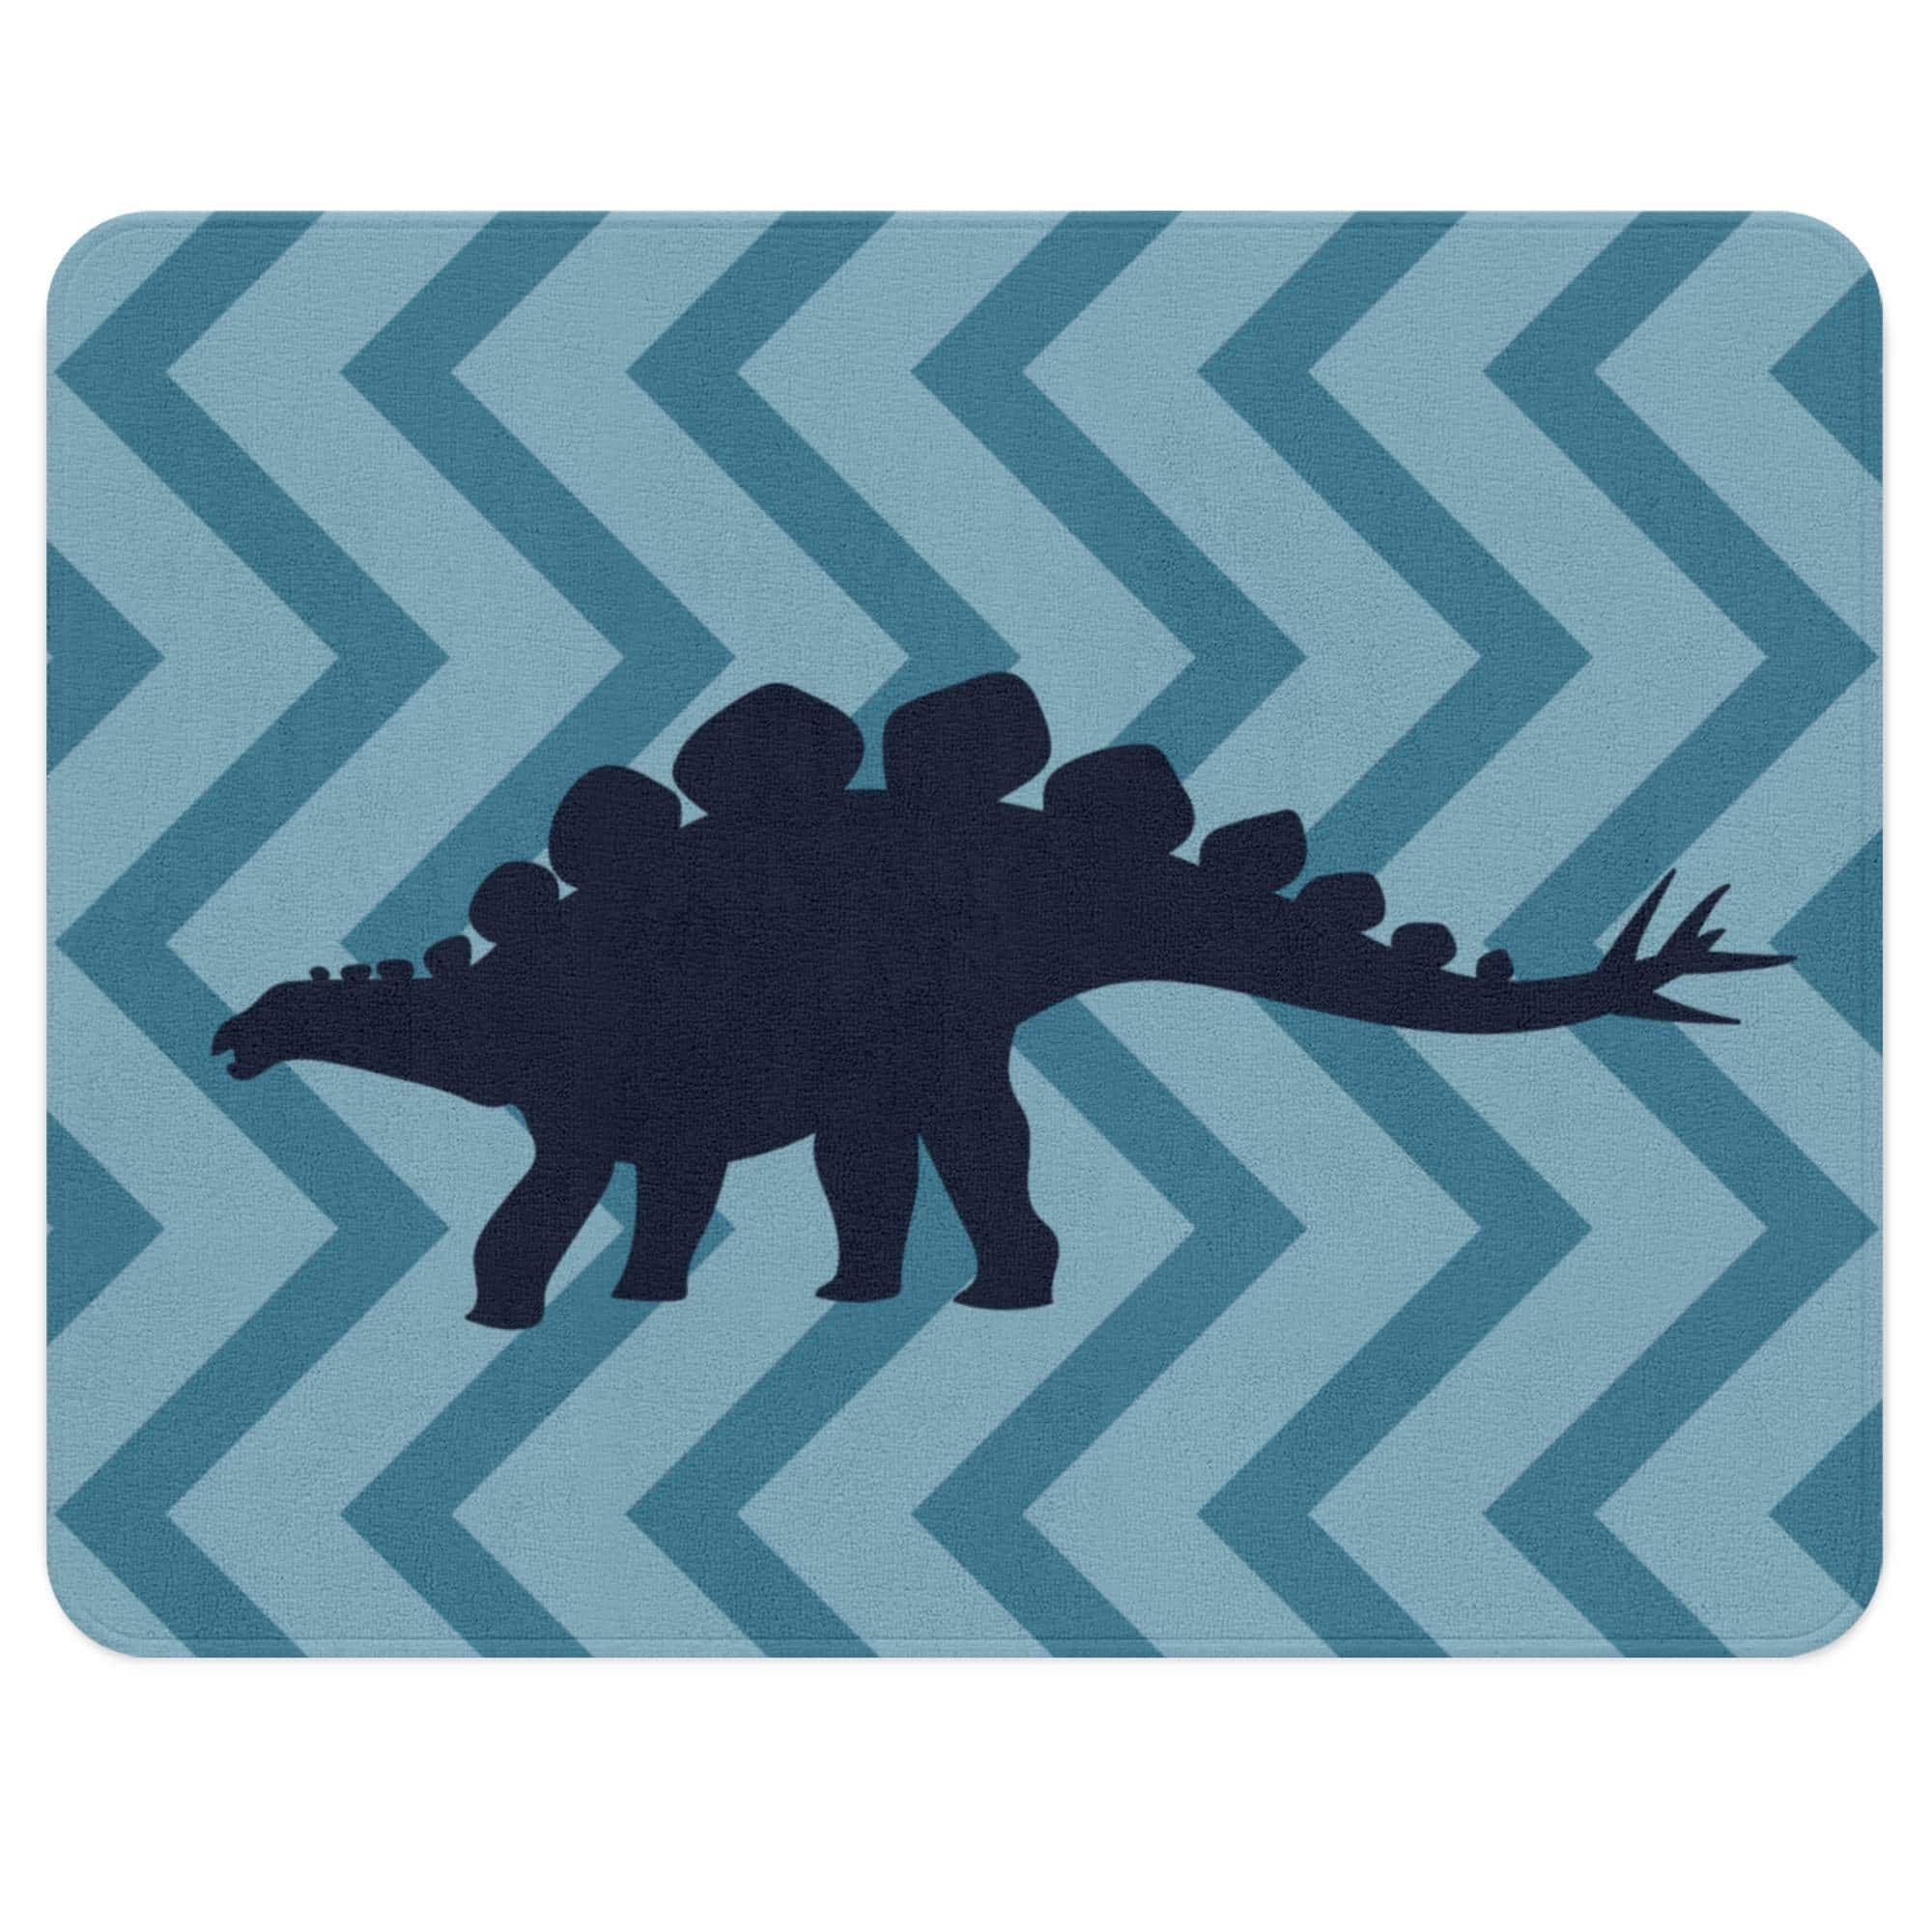 Dinosaur Rug Blue Chevron Background with Stegosaurus on it, Soft Plush Classroom Rug